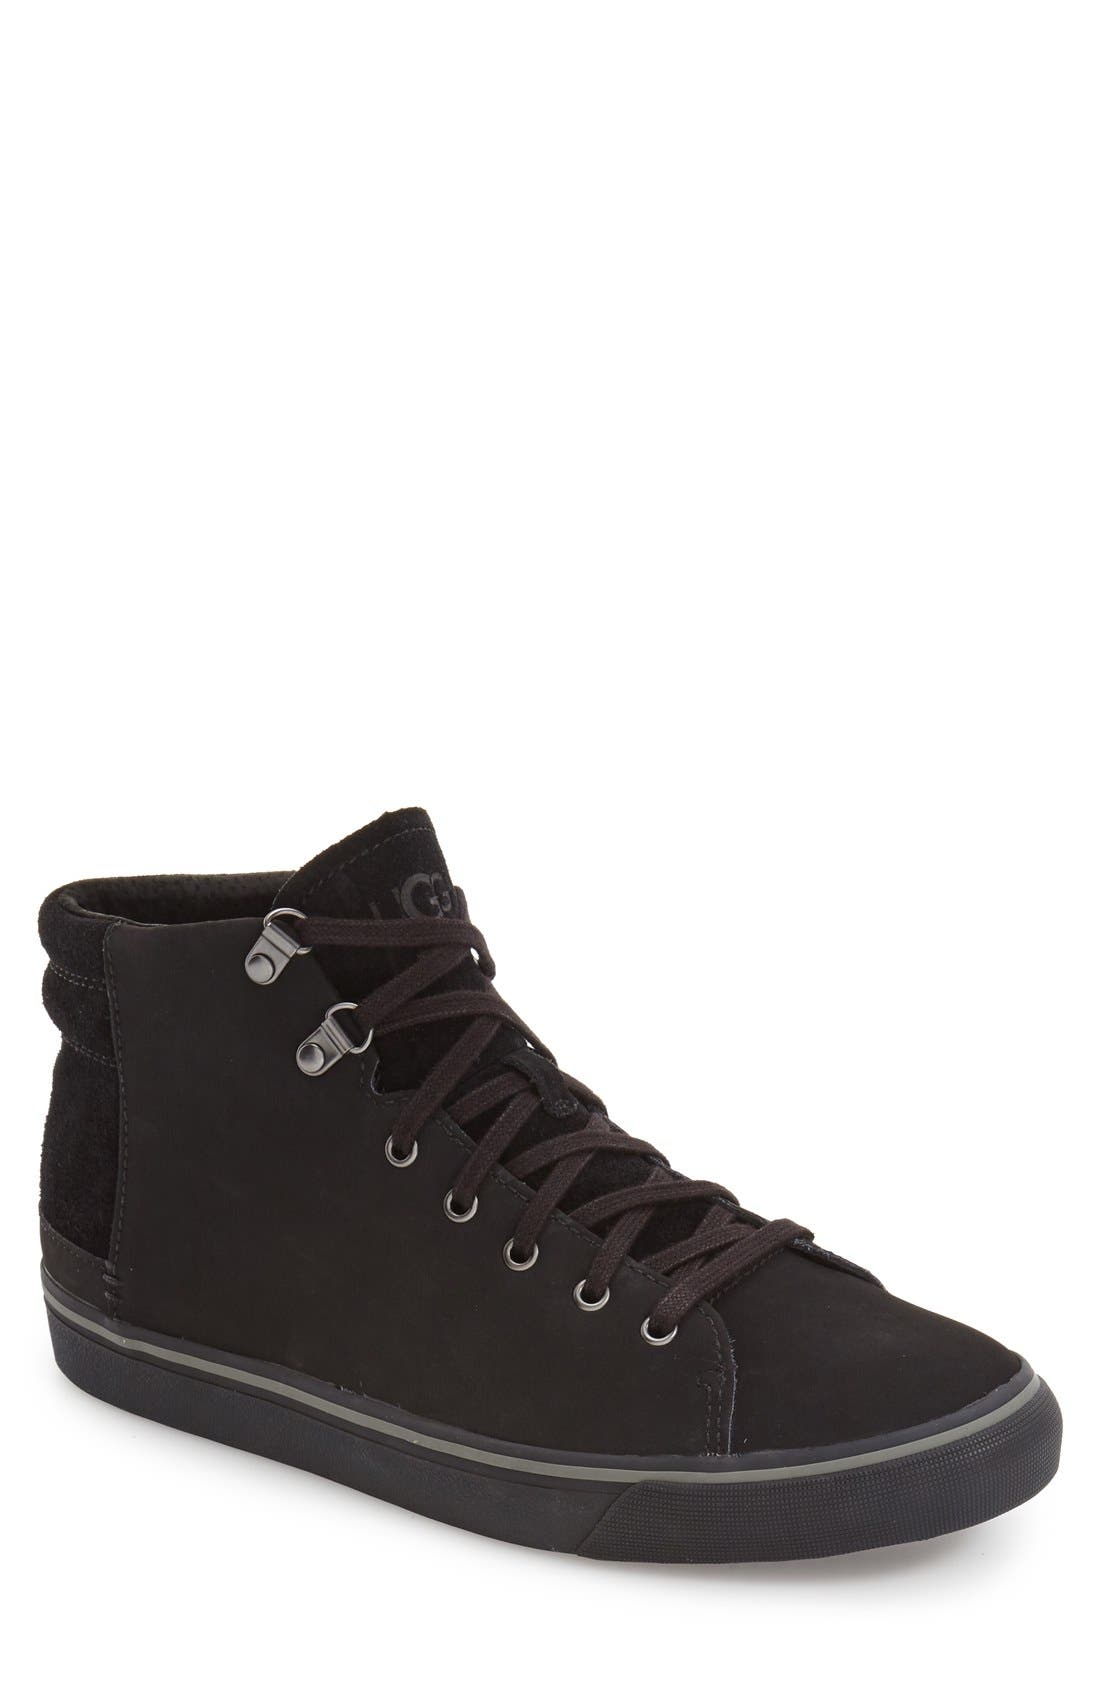 Alternate Image 1 Selected - UGG® 'Hoyt' Waterproof High Top Sneaker (Men)